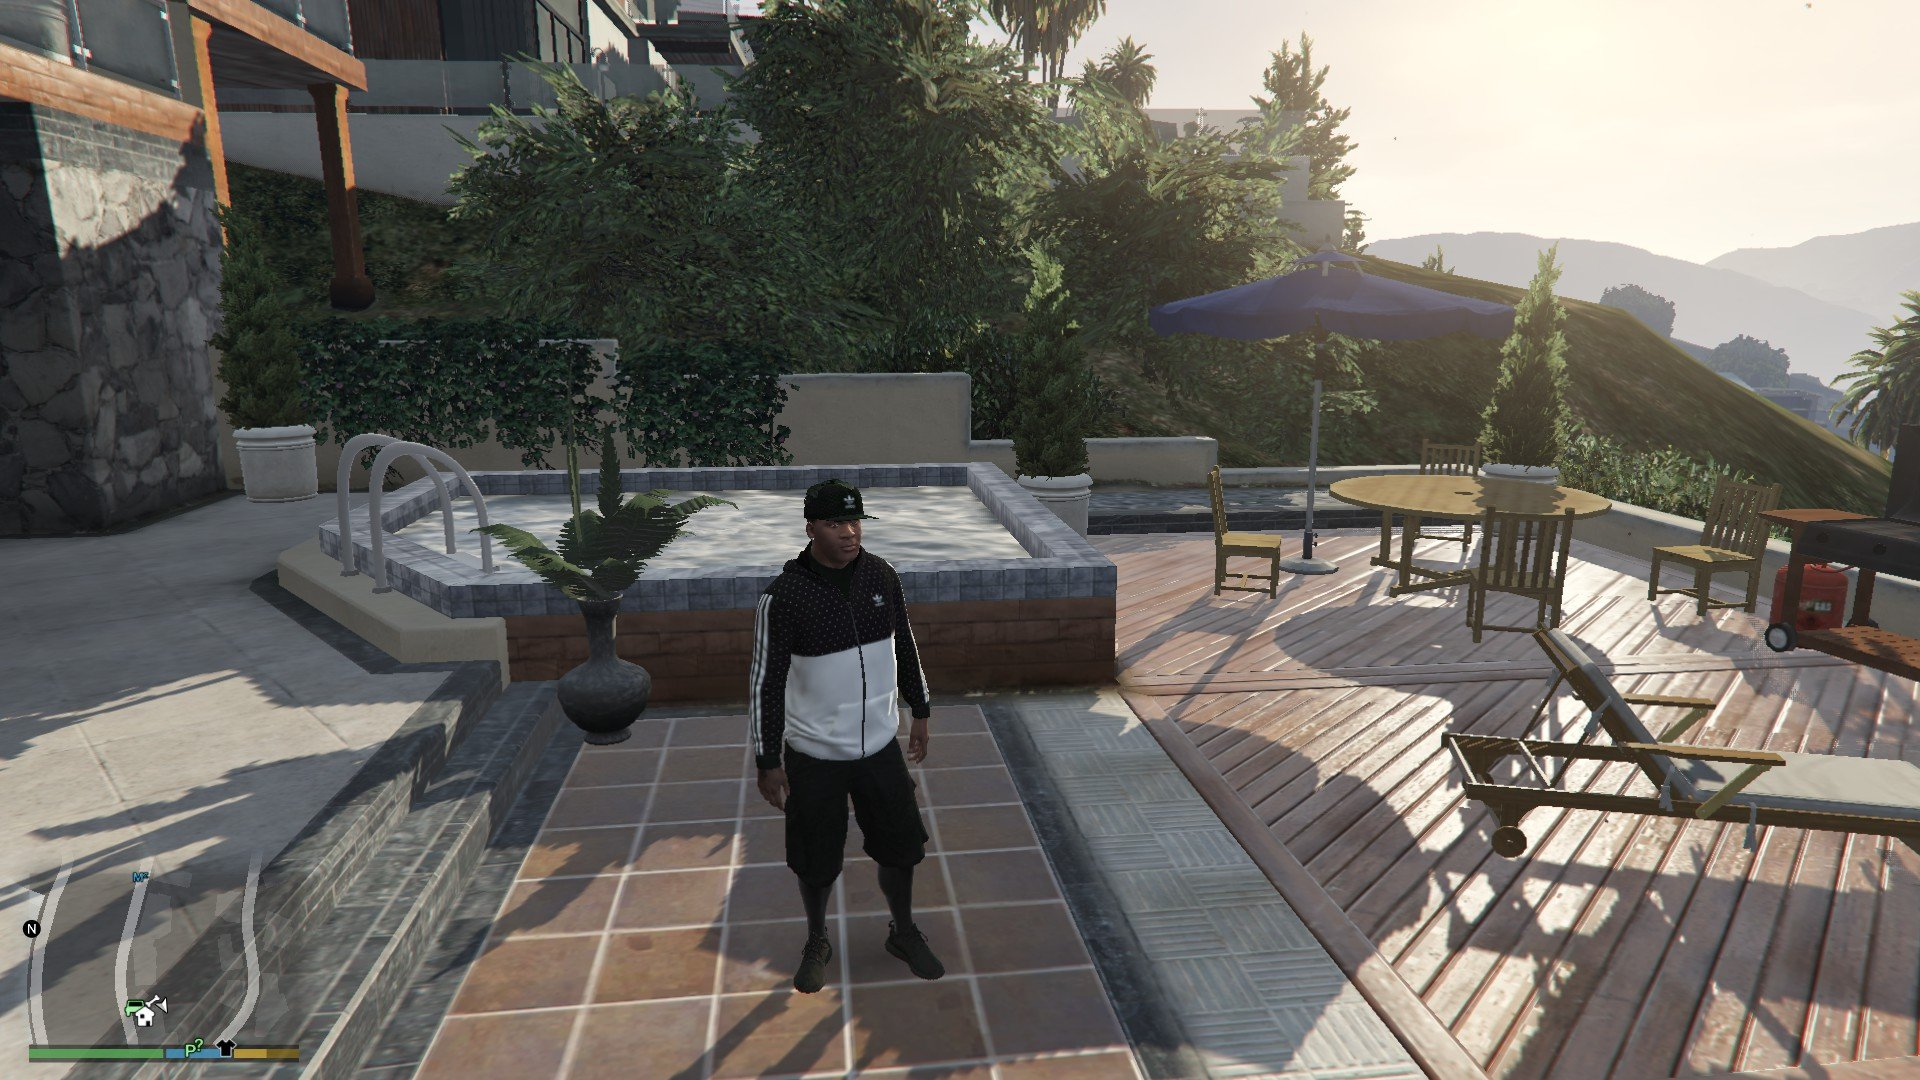 Addidas OutFit For Franklin GTA5 Mods (8)